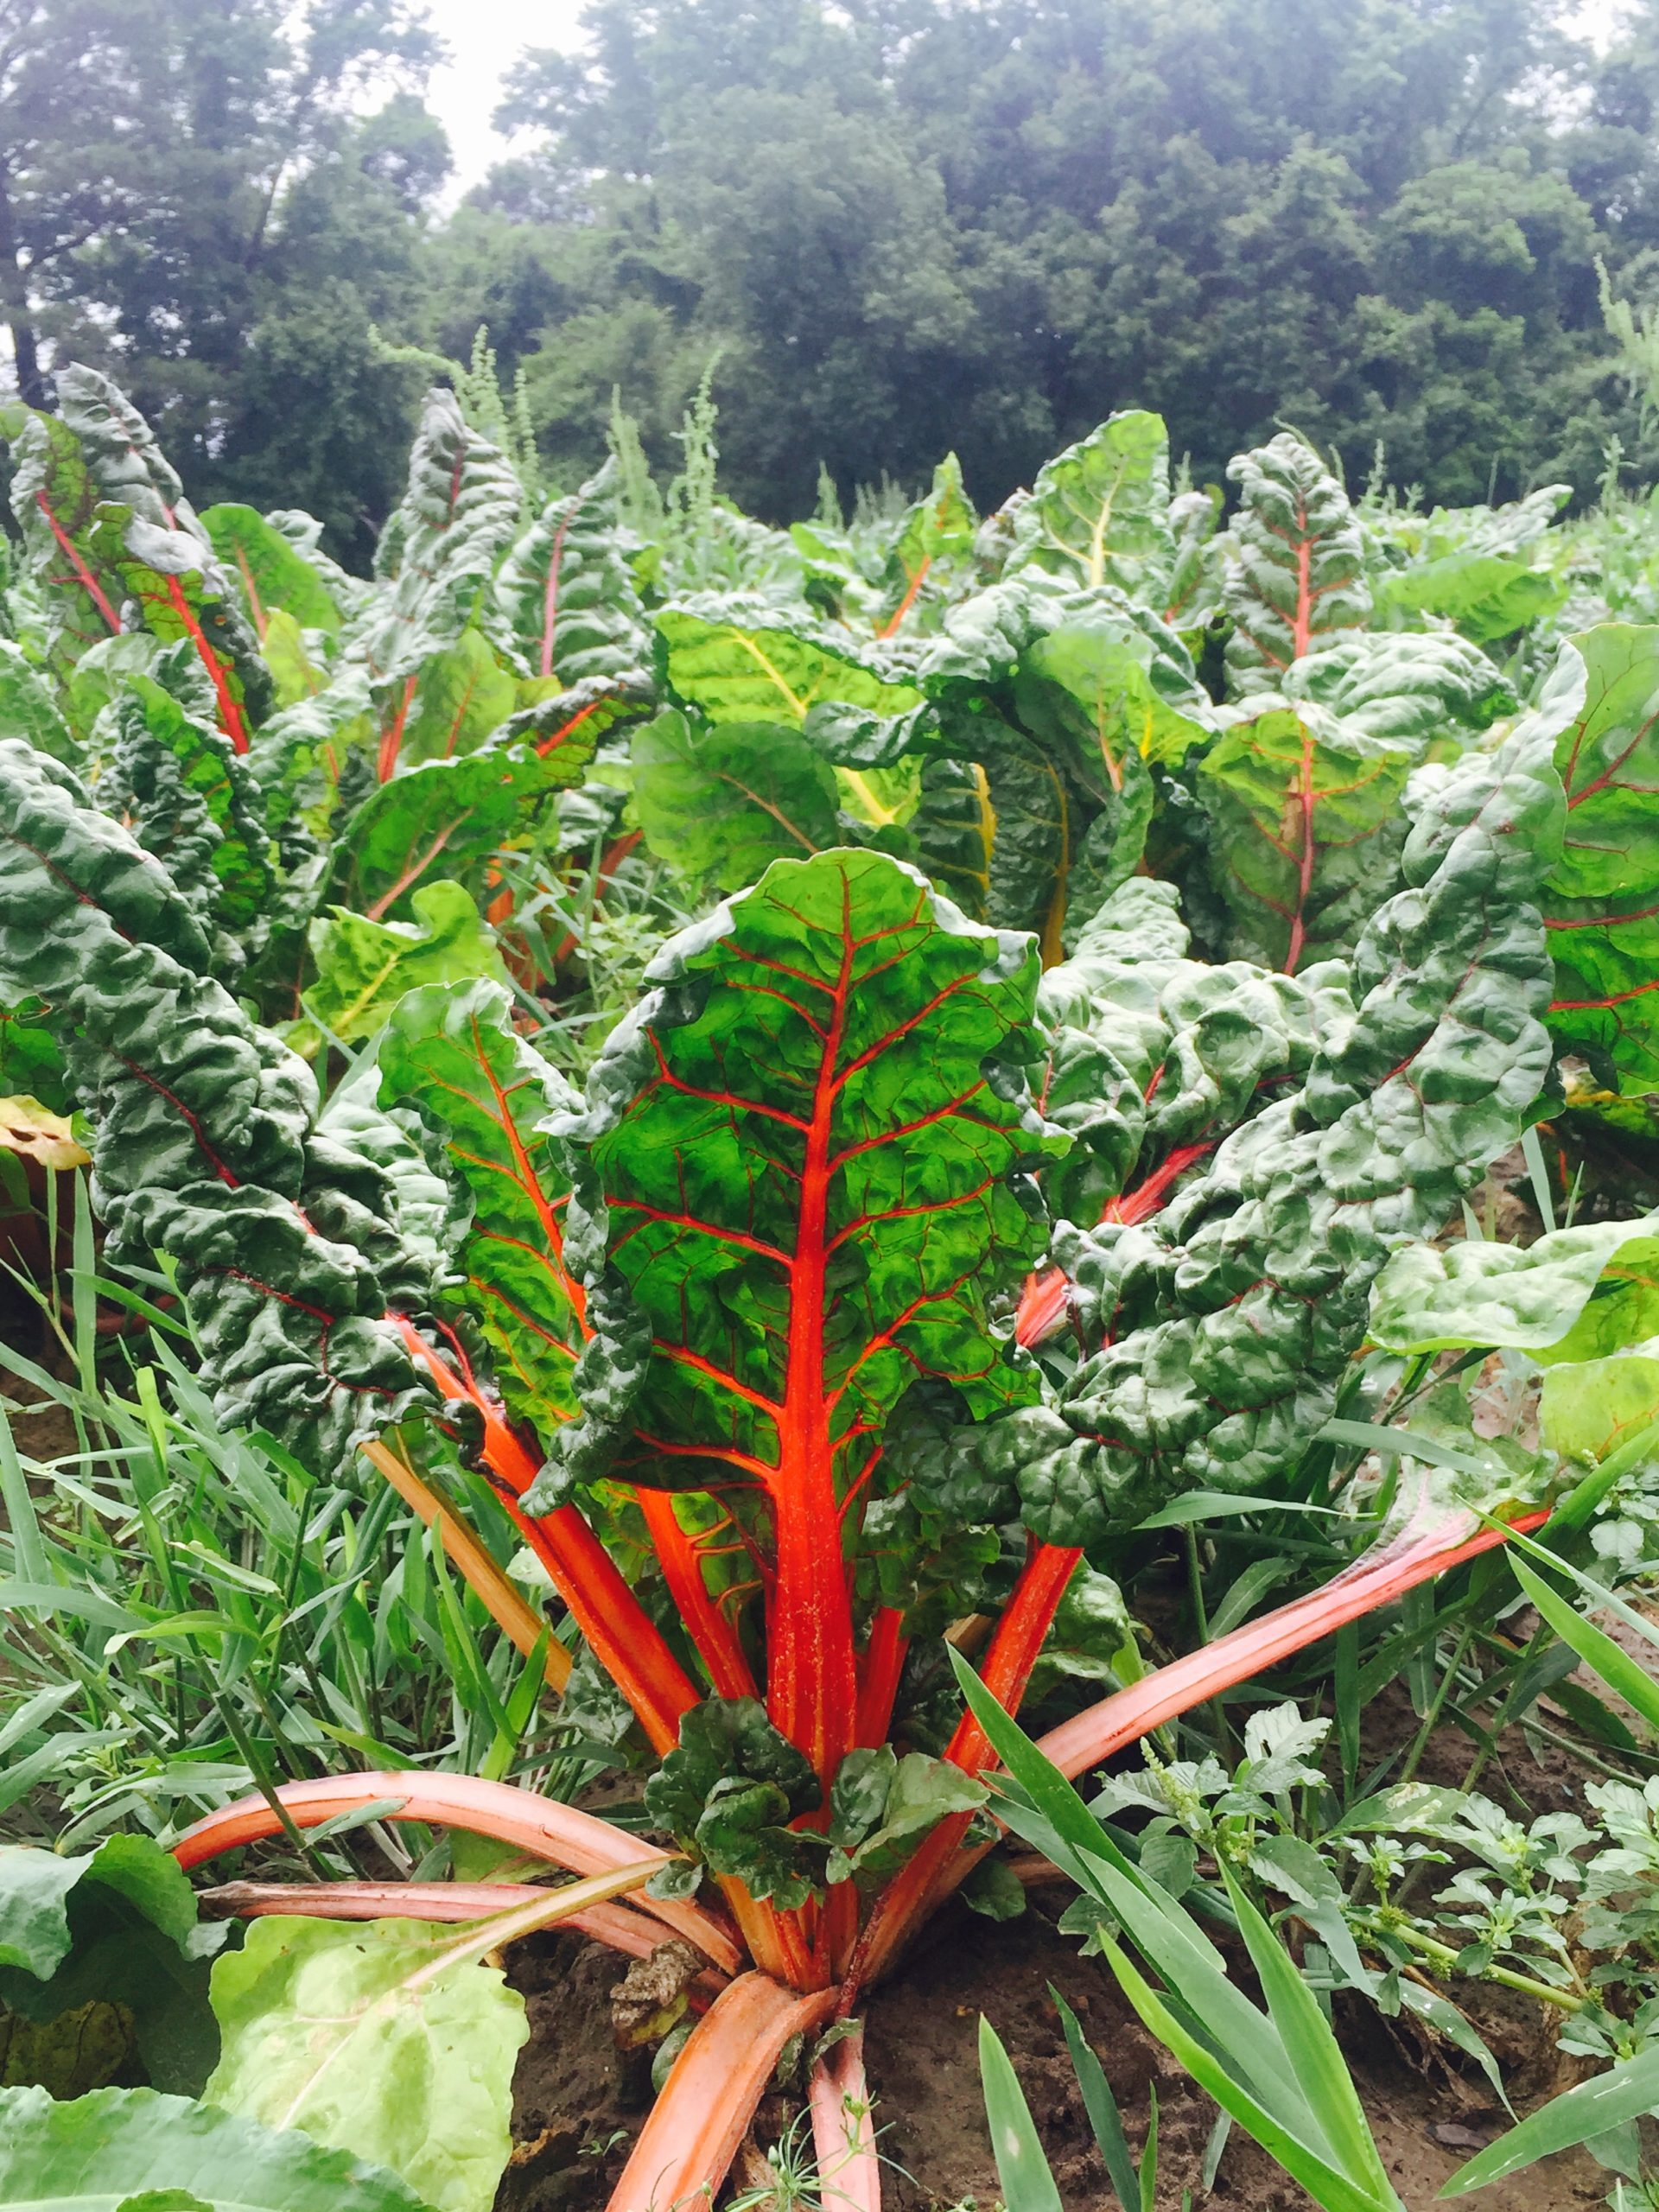 Bright orange and red stalks of red chard with leafy green tops growing in their crop field.